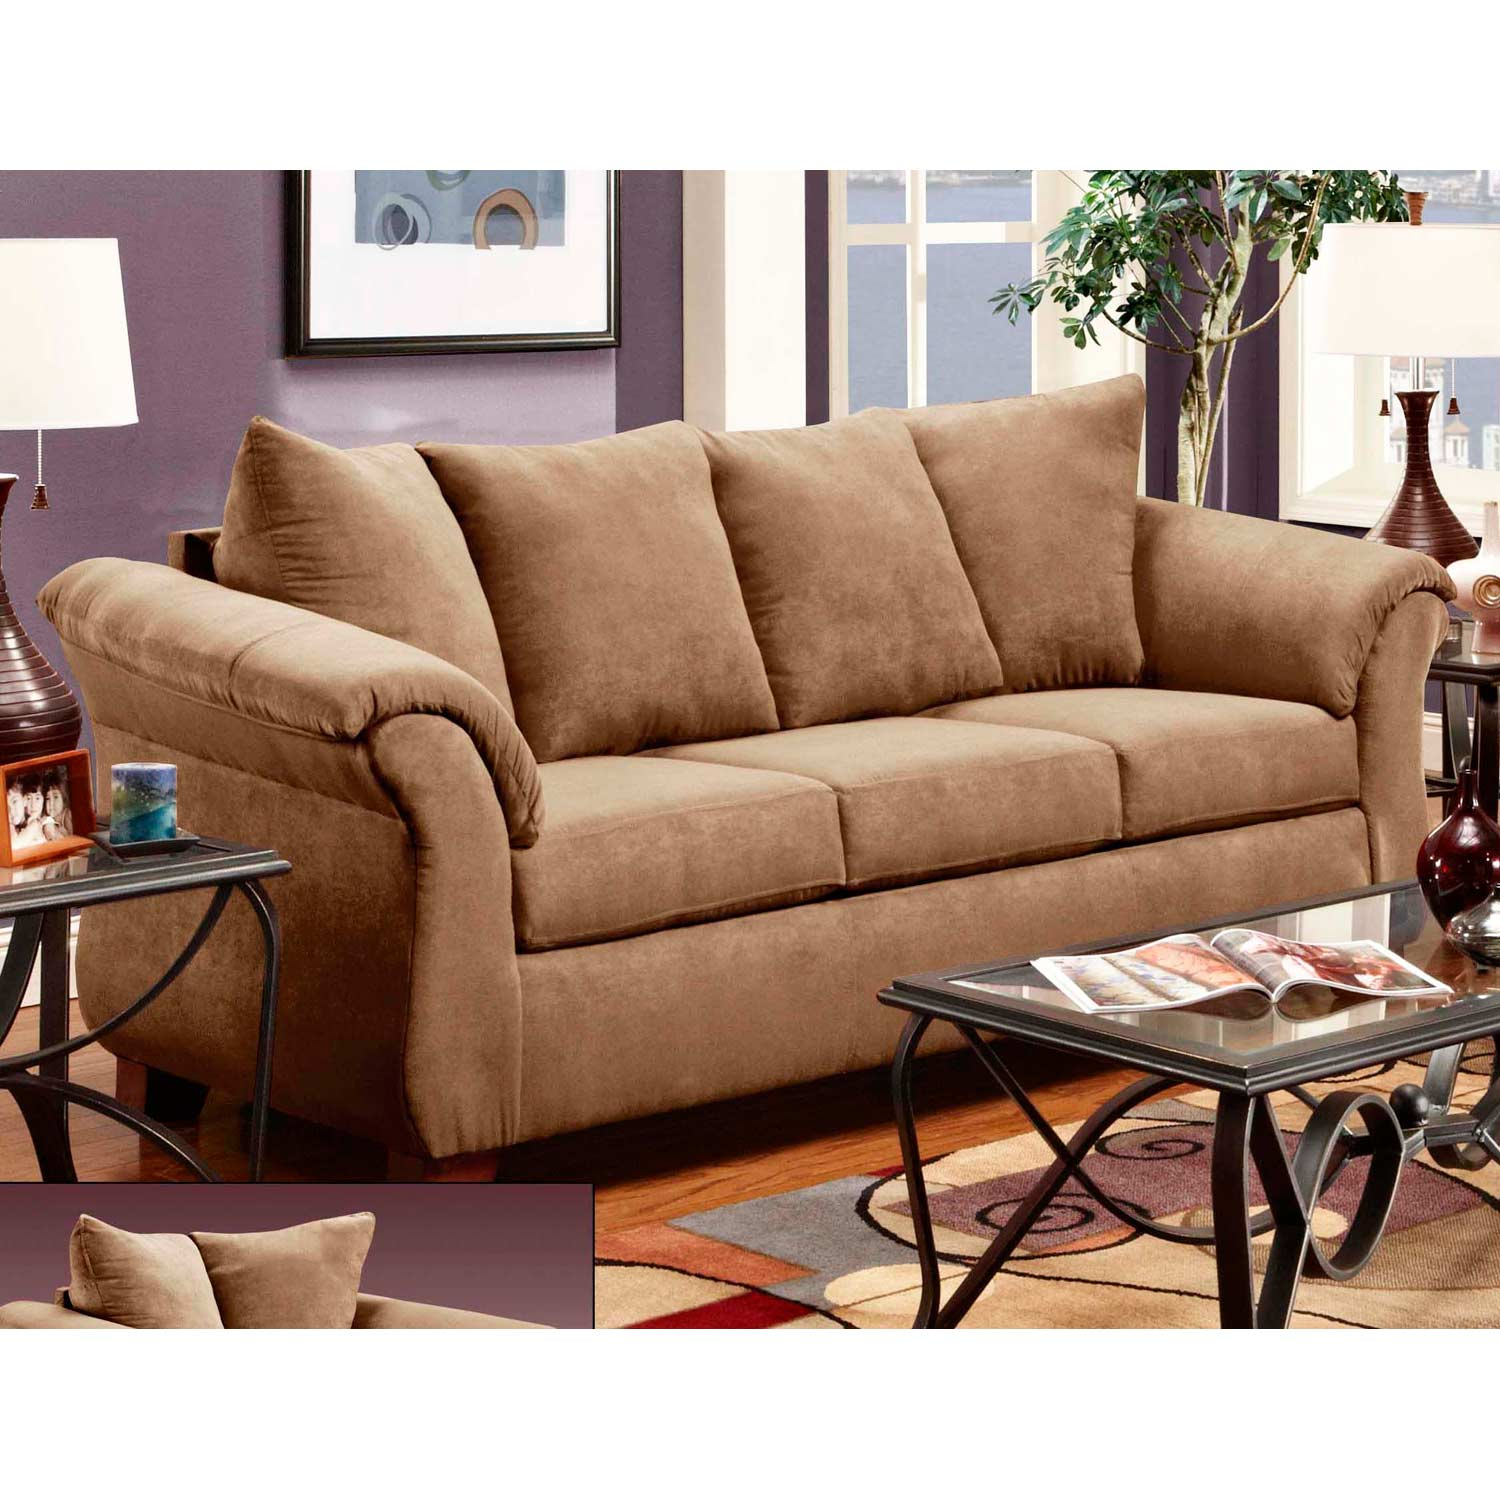 Kiersten Flared Arm Fabric Sofa - Victory Lane Taupe - CHF-472000-S-VLT